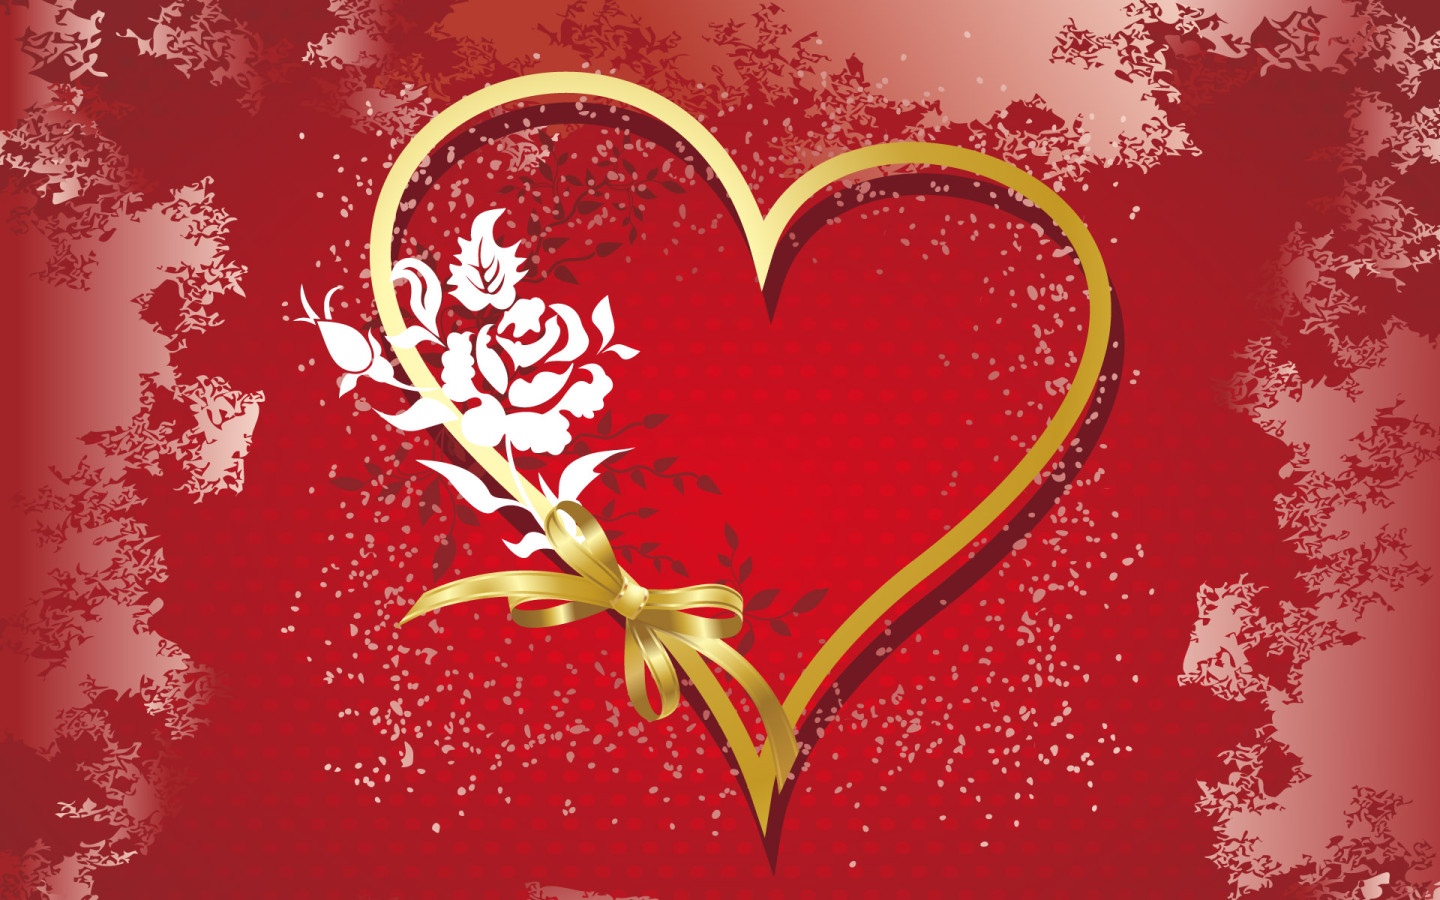 Valentines Day Wallpapers Valentine Hearts Wallpaper Love Heart 1440x900